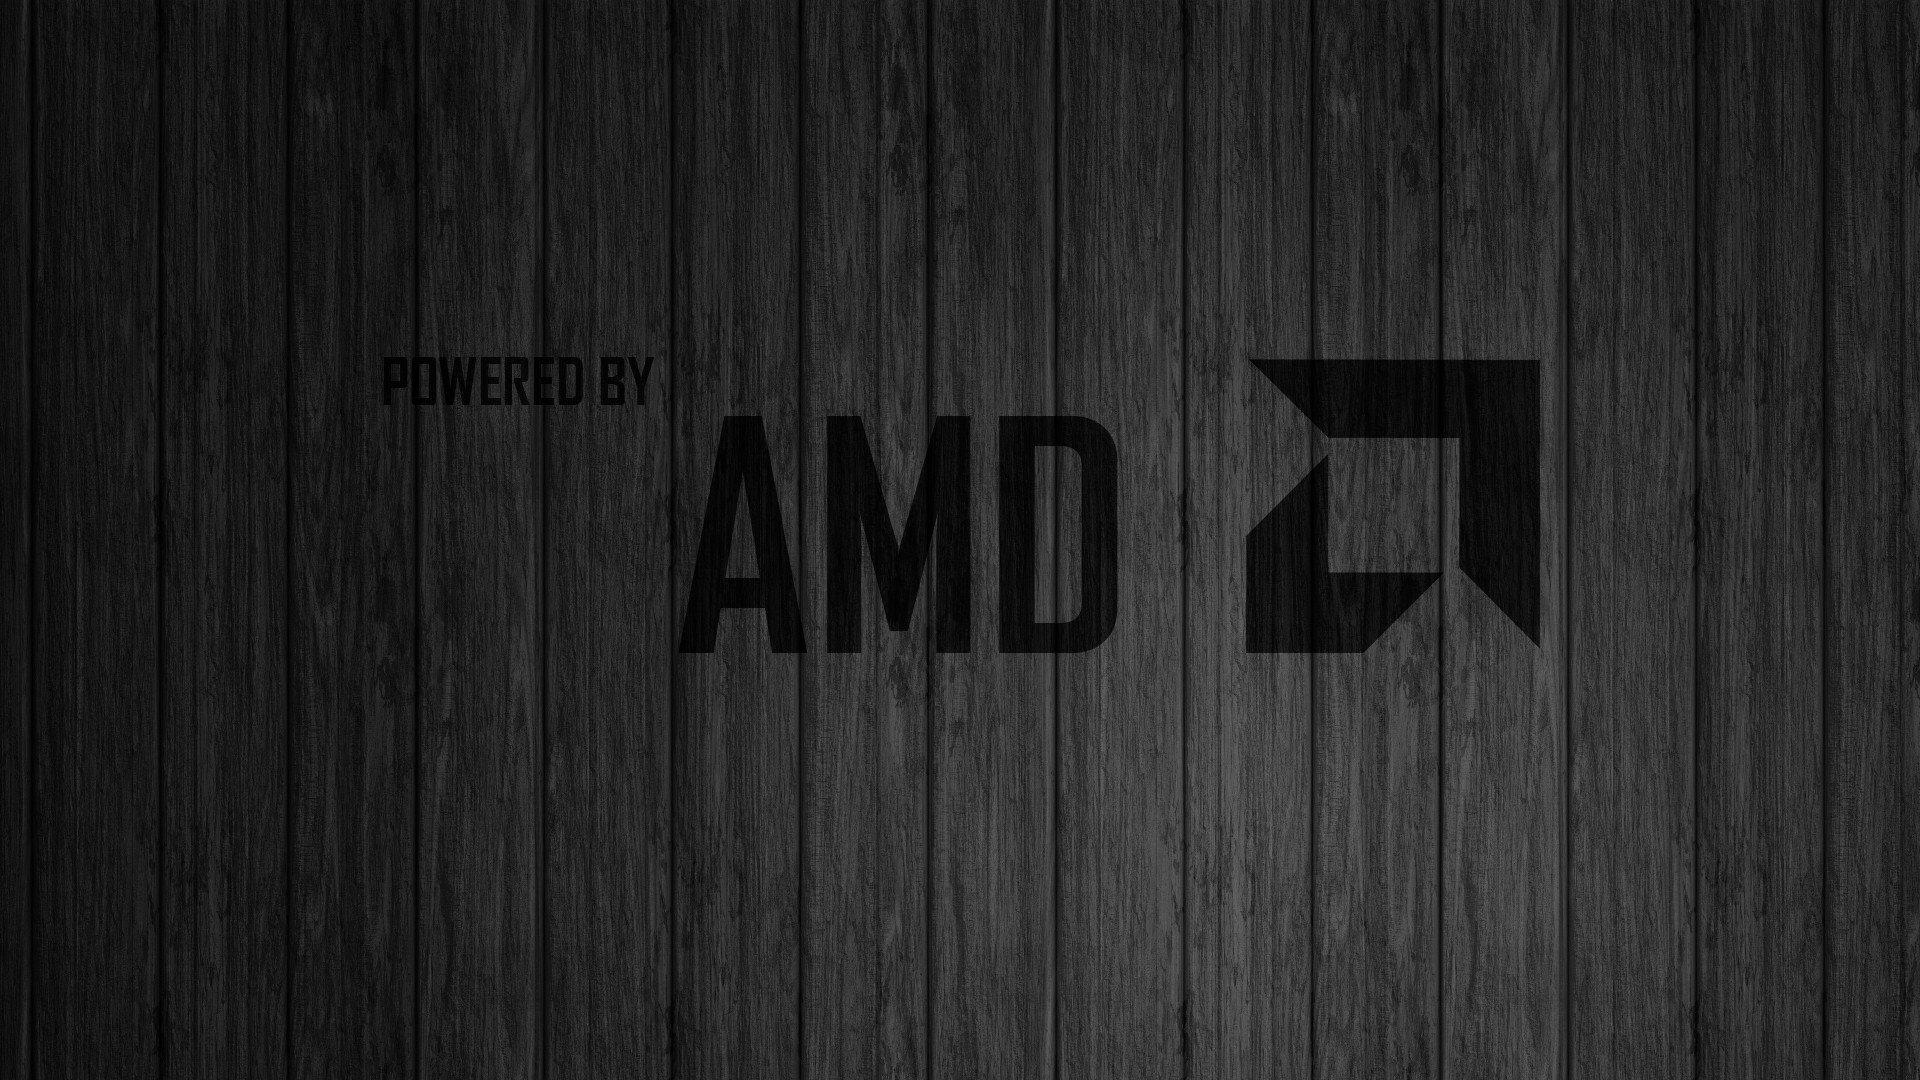 AMD HD Wallpapers / Desktop and Mobile